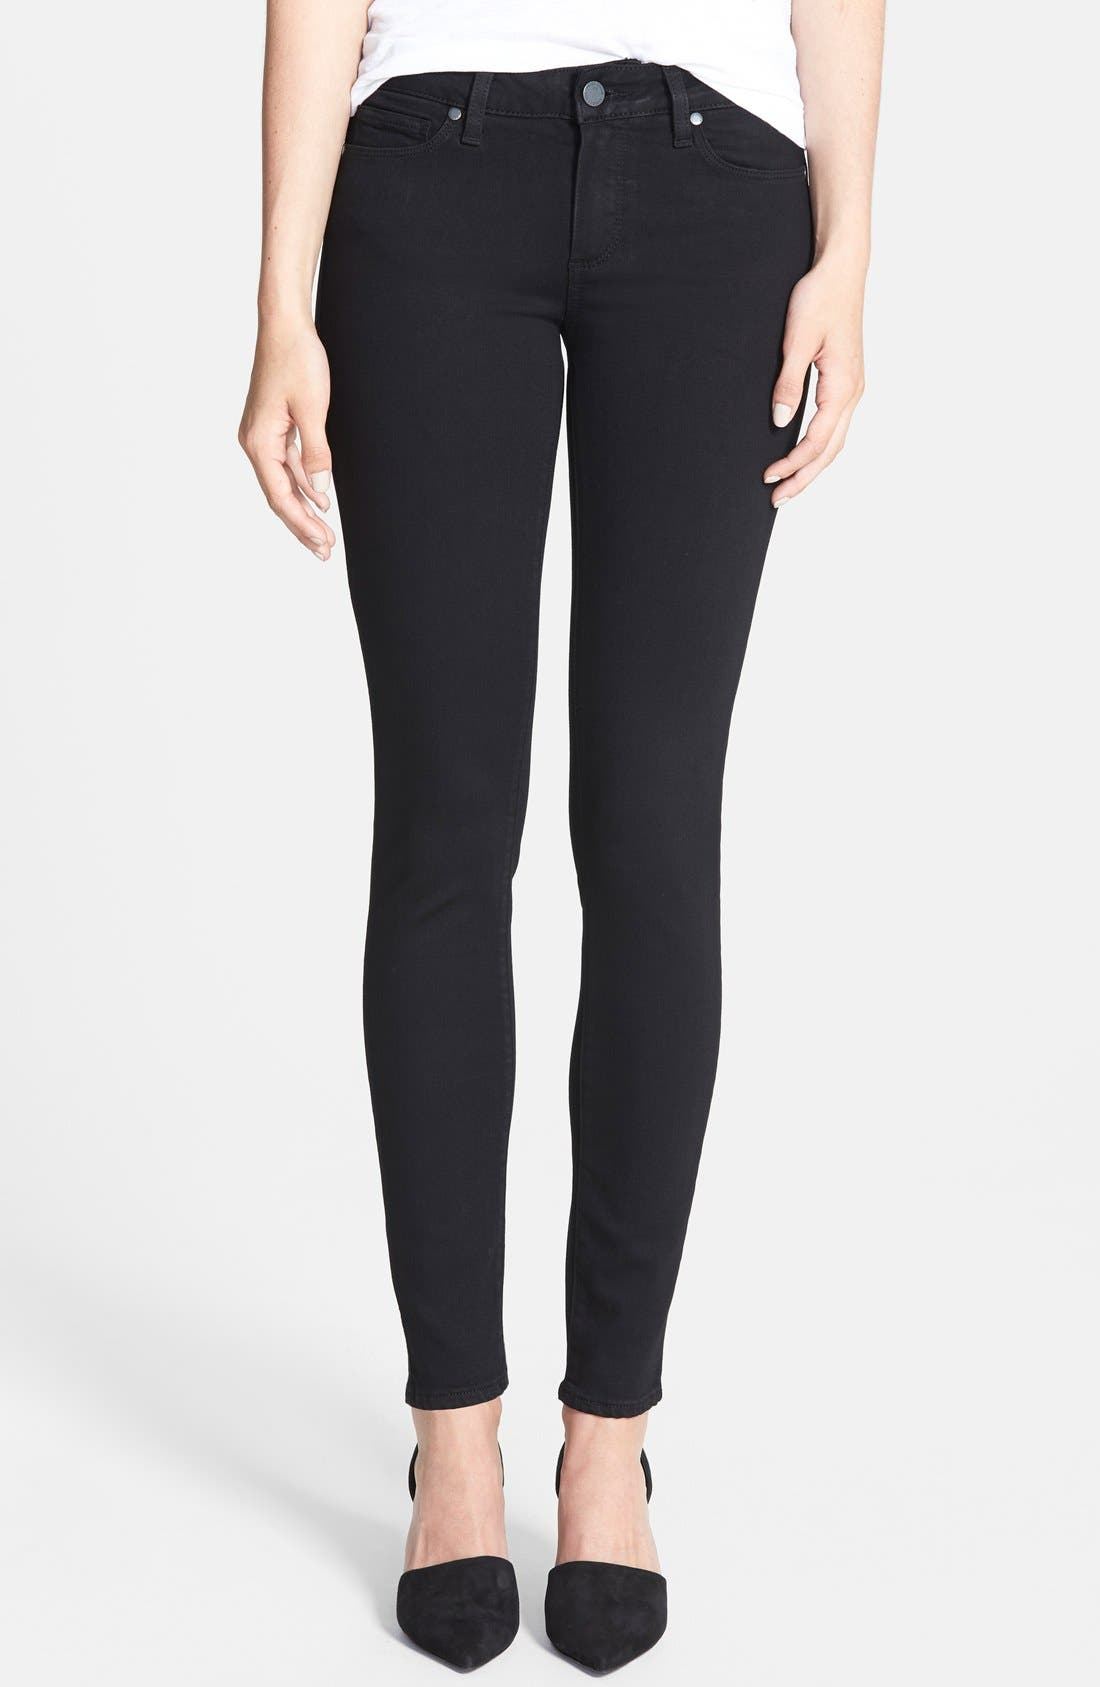 Alternate Image 1 Selected - PAIGE Transcend - Verdugo Ultra Skinny Jeans (Black Shadow)